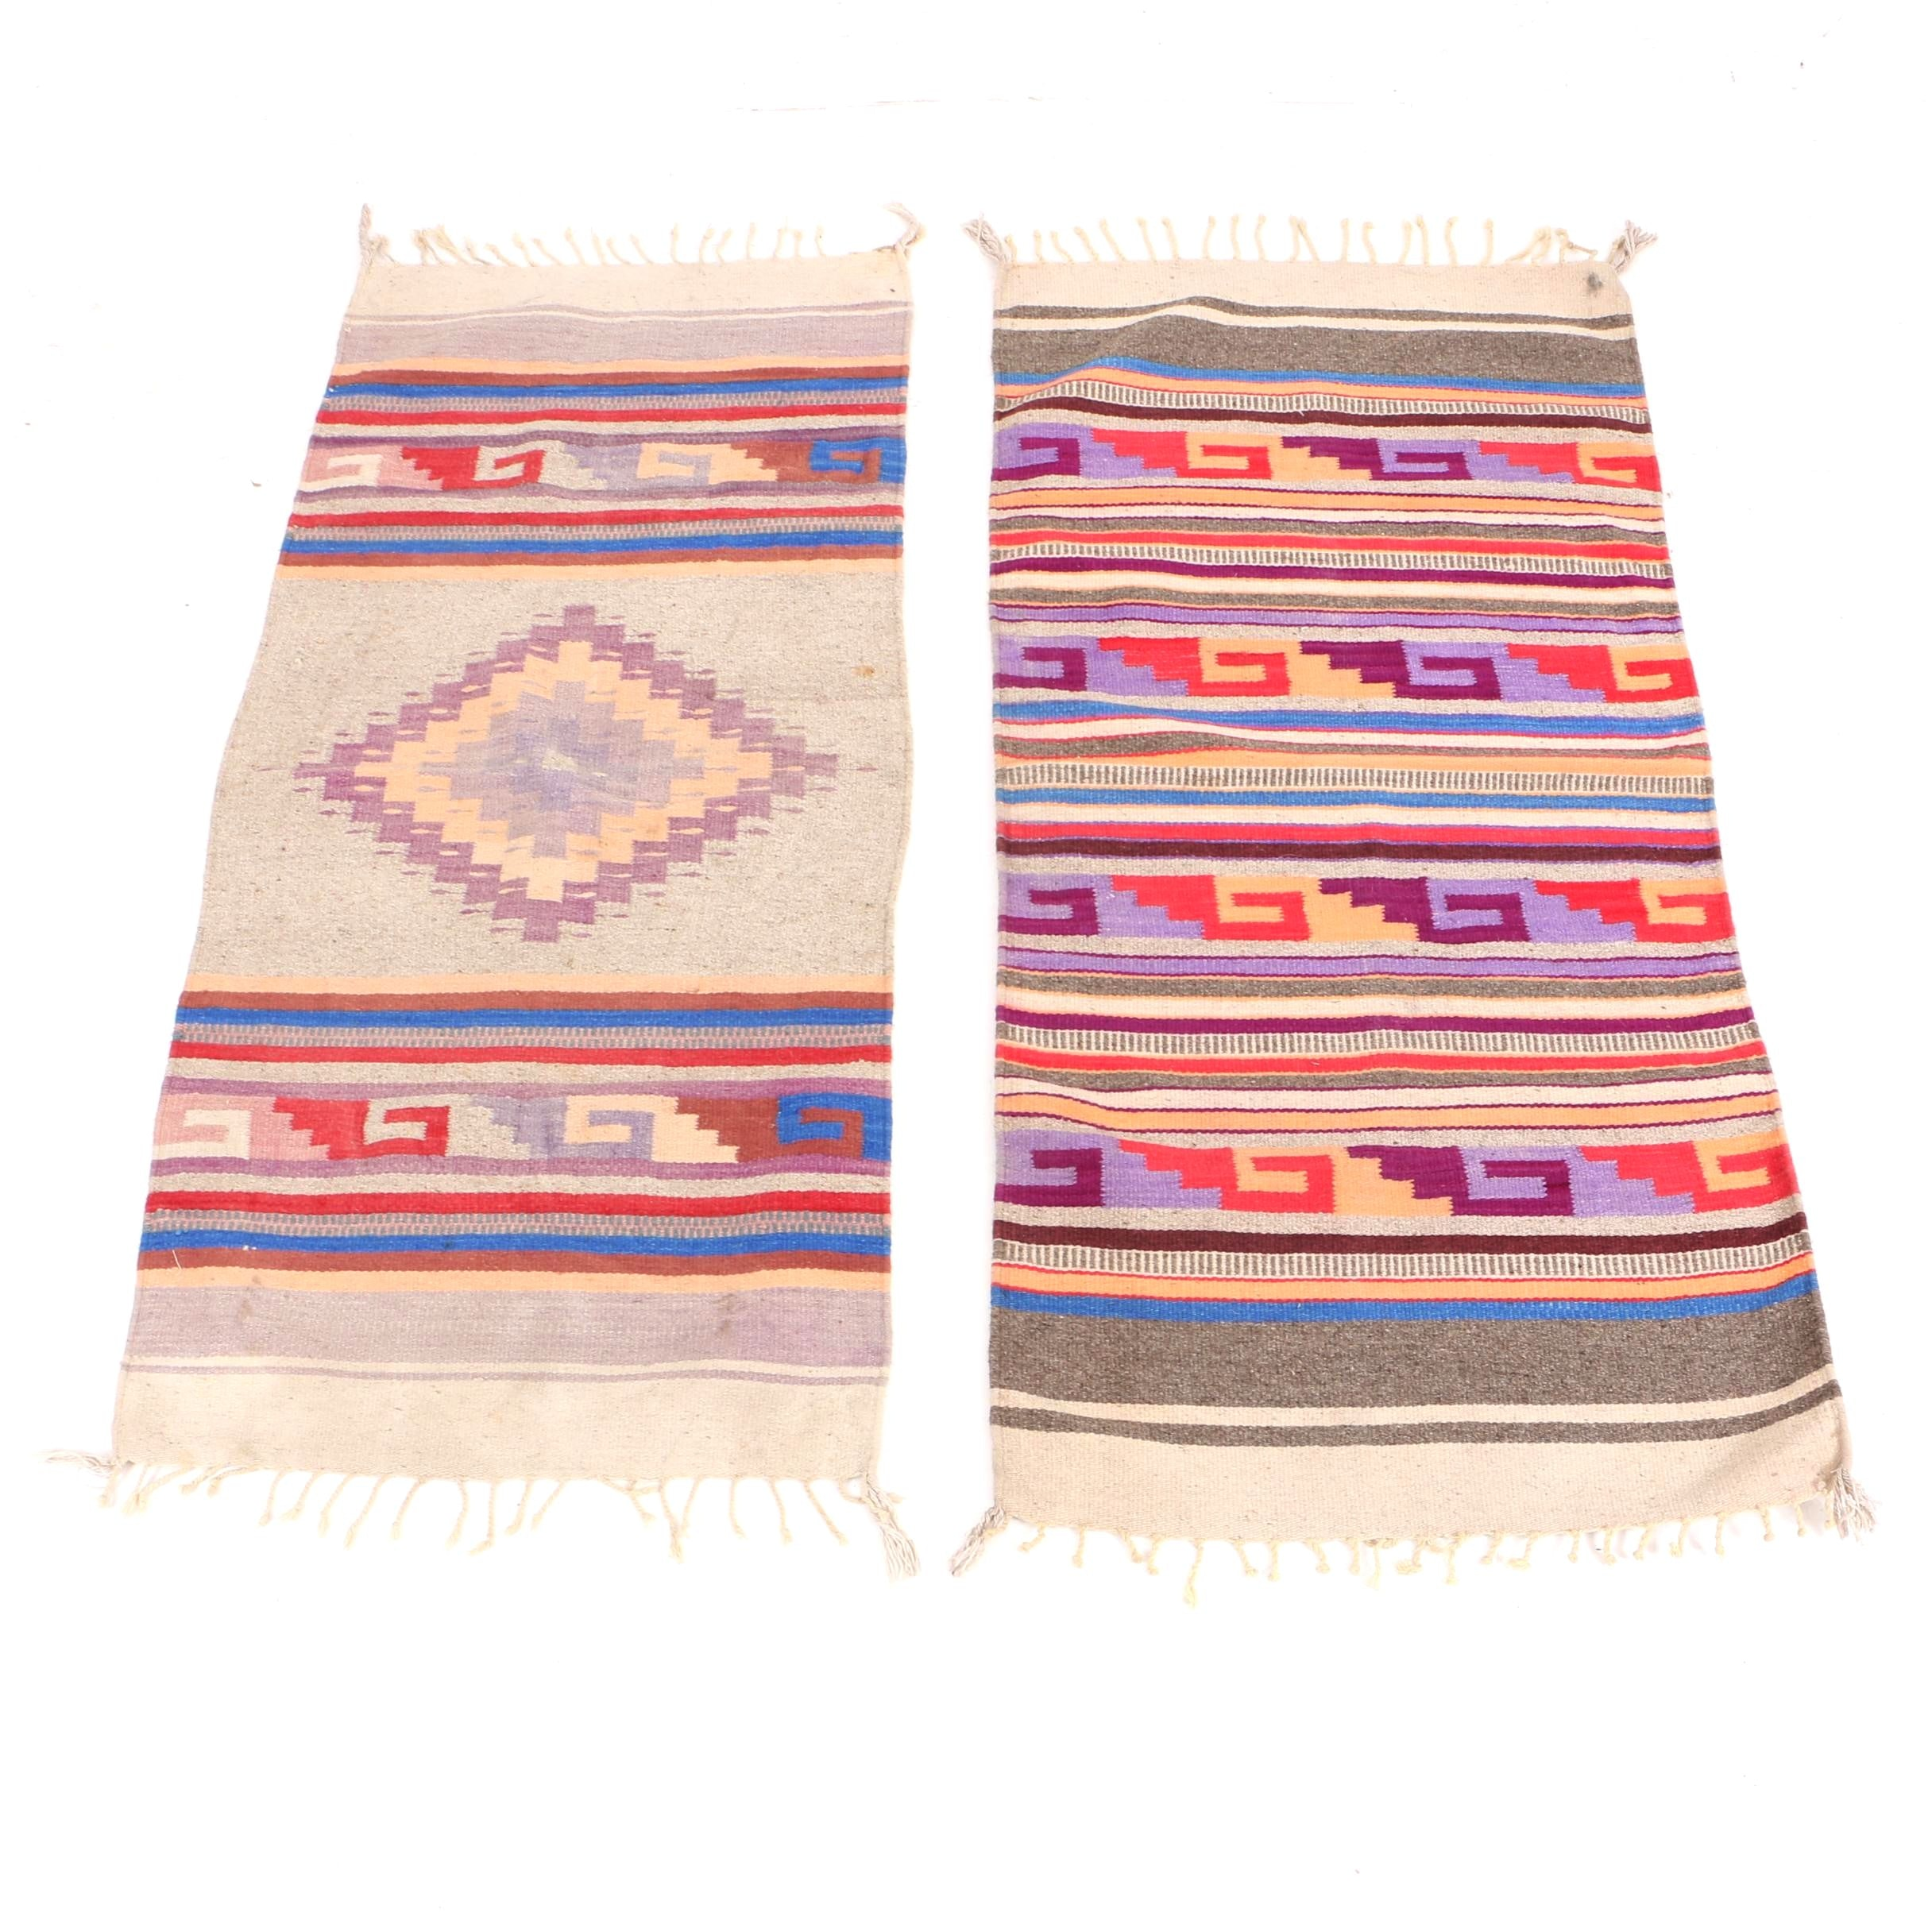 Handwoven Southwestern Style Wool Accent Rugs or Saddle Blankets